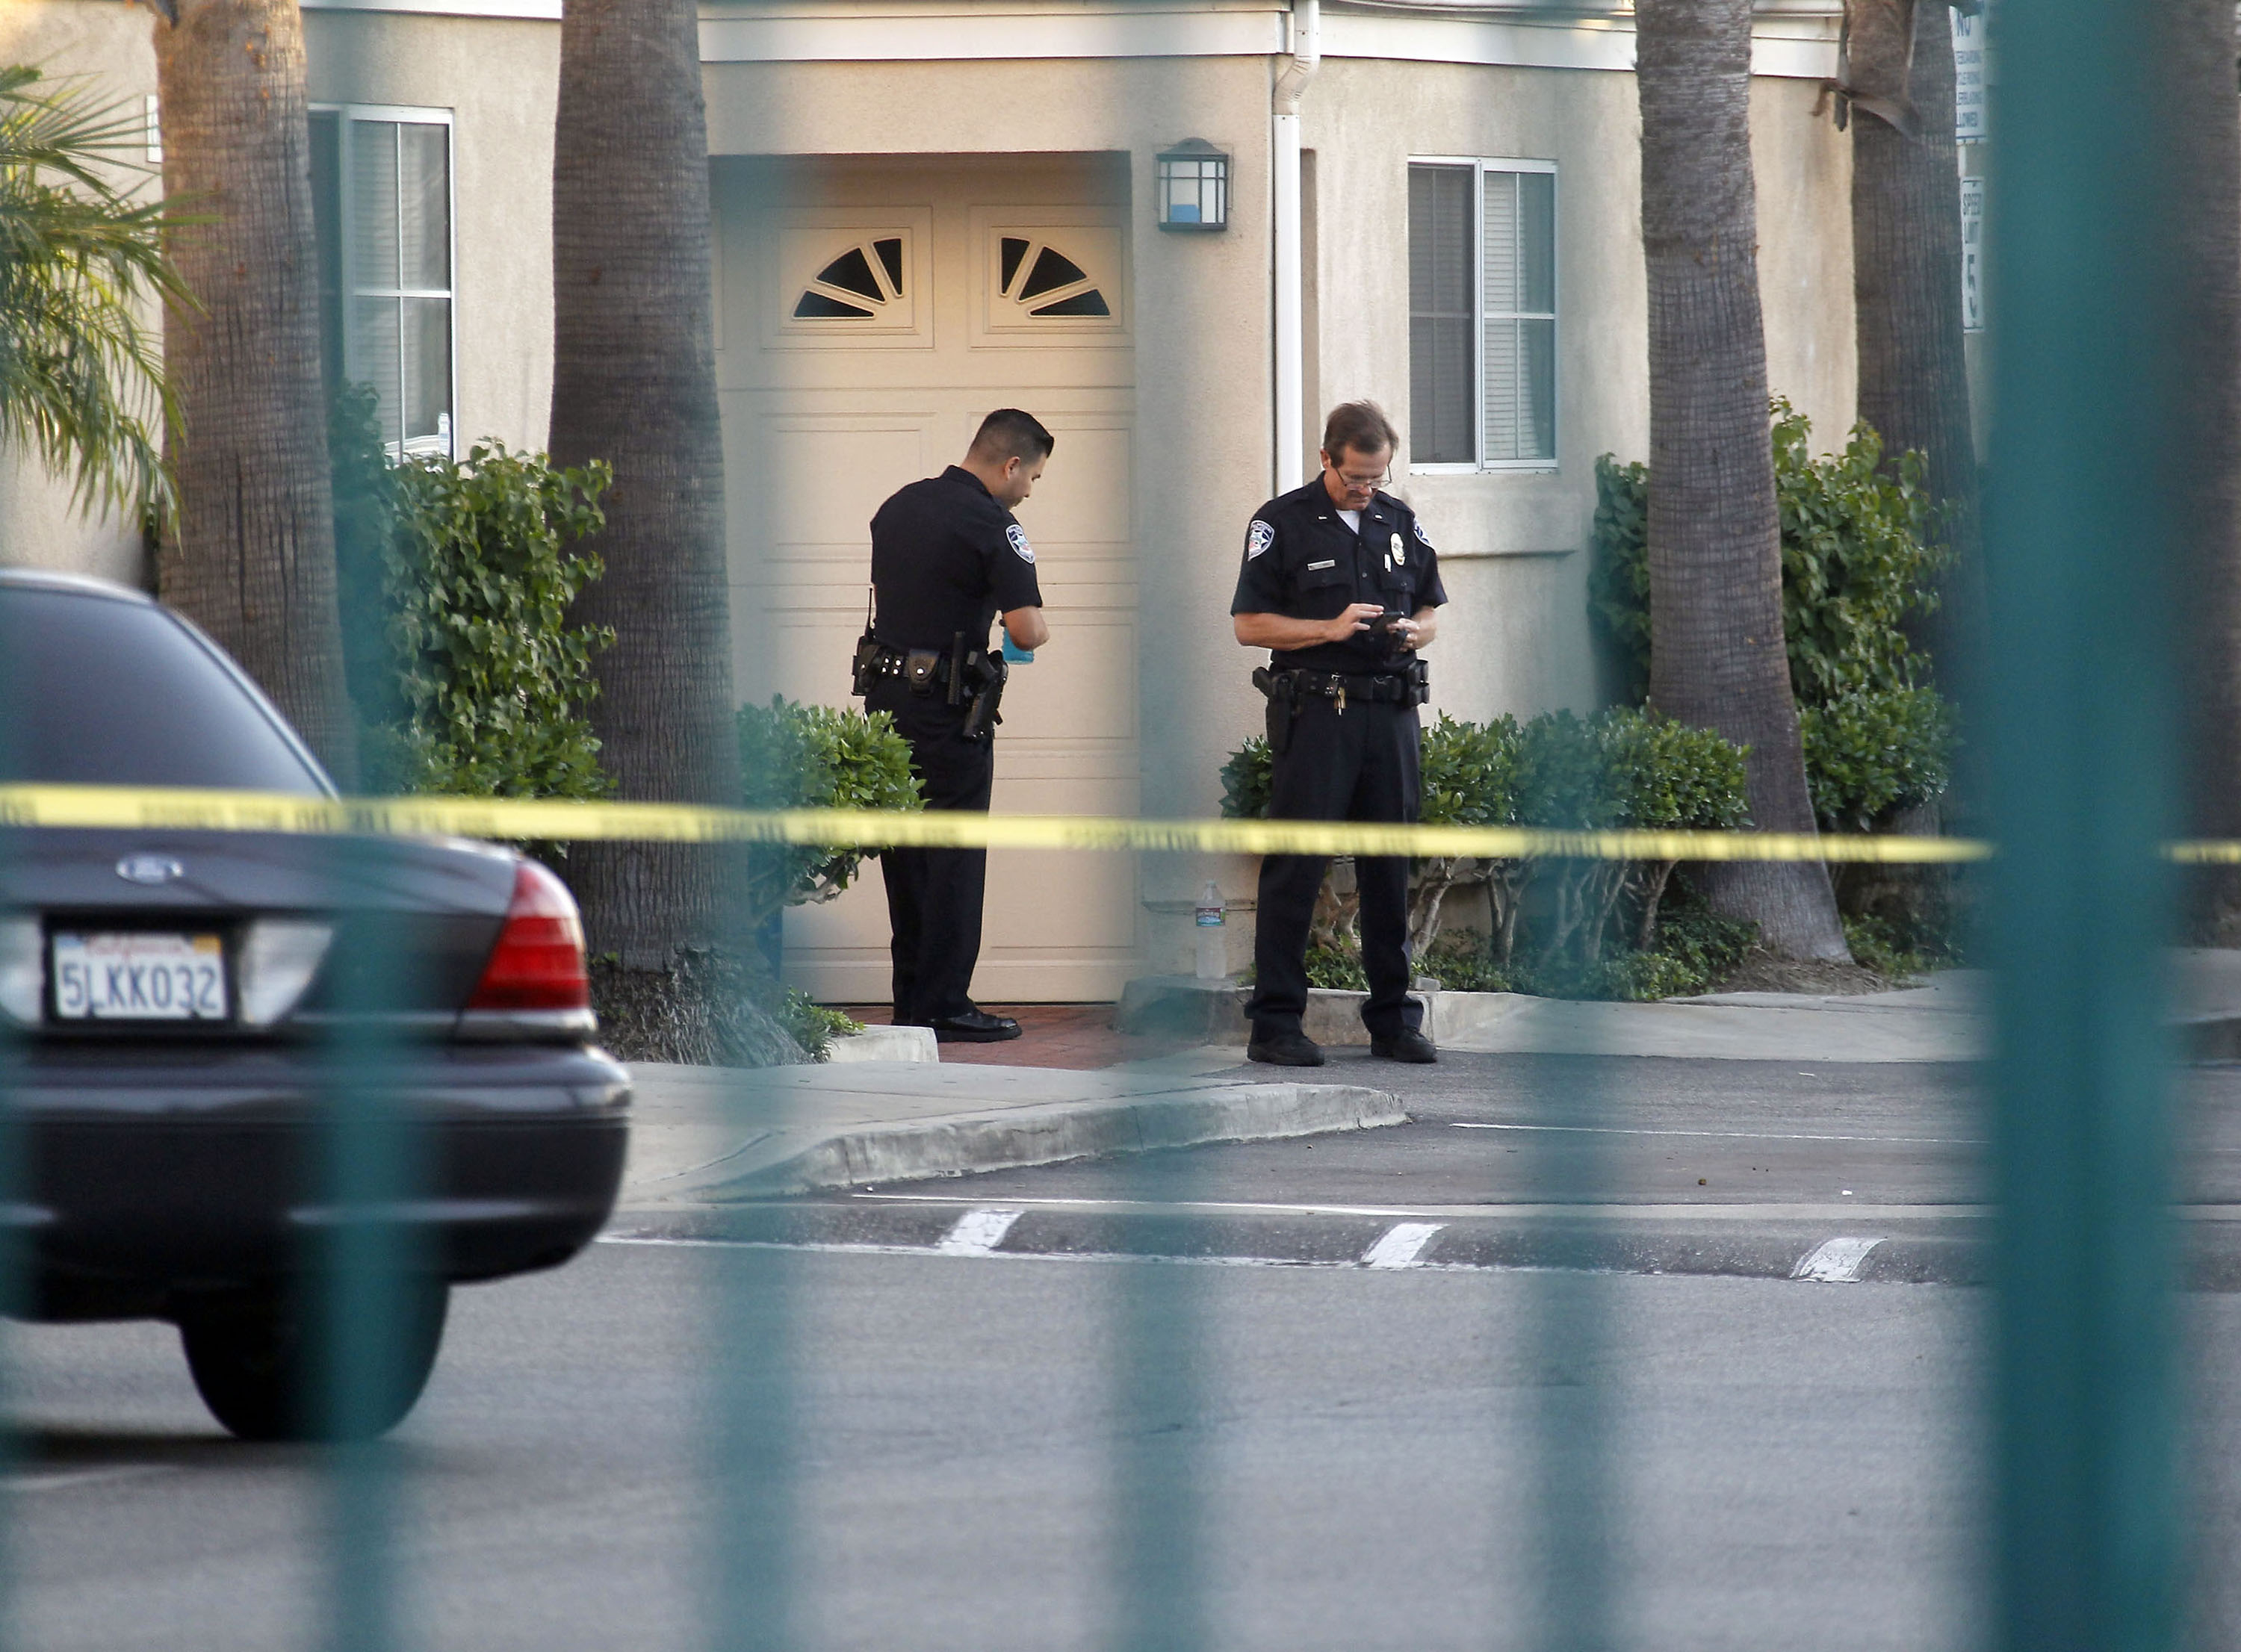 Police officers stand by the scene of a shooting in Bell Gardens, Calif., on Sept. 30, 2014